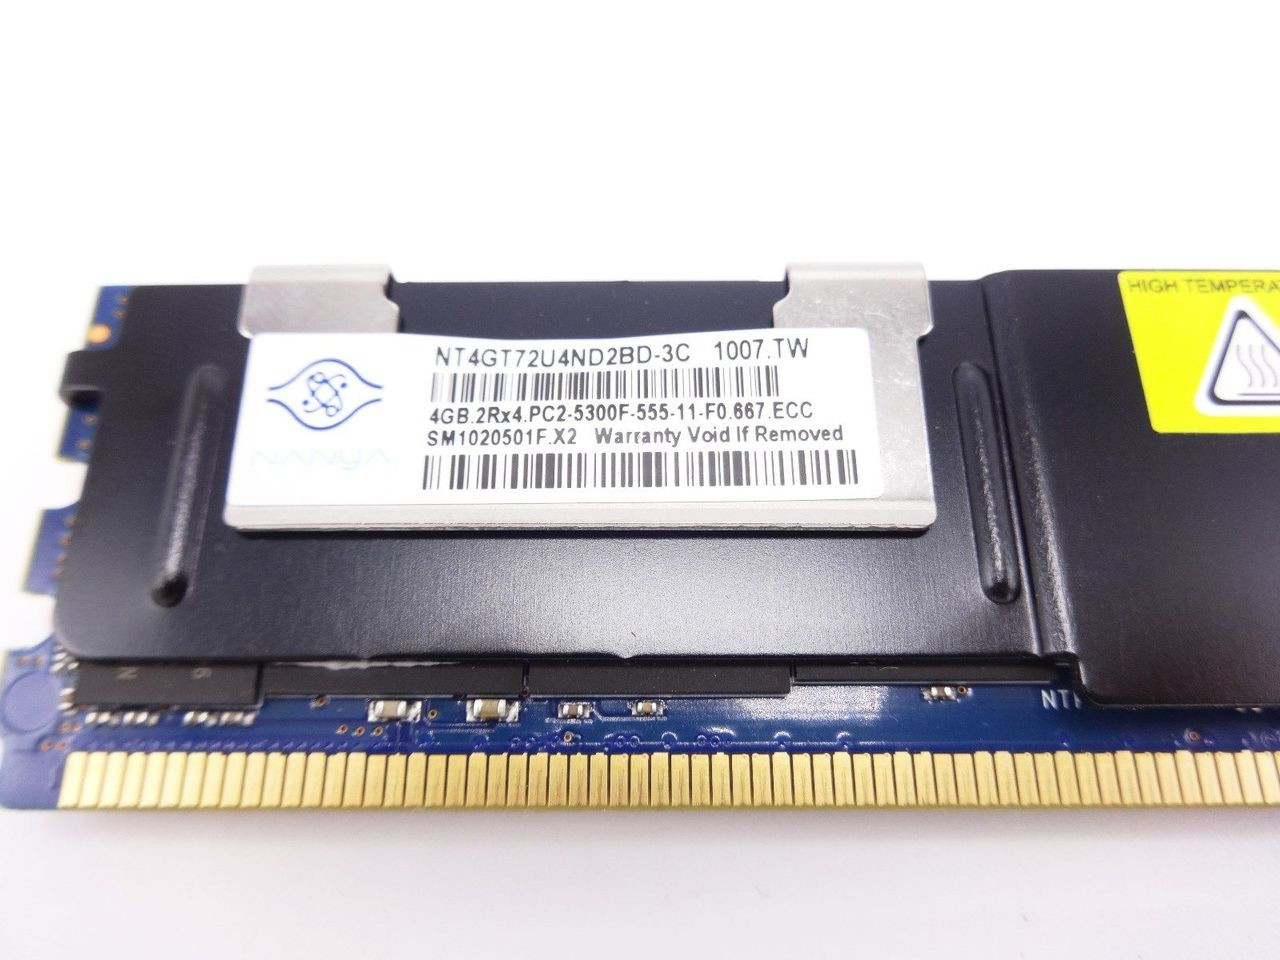 NANYA NT4GT72U4ND2BD-3C 4GB PC2 5300F 2RX4 memory dimm *Server memory*